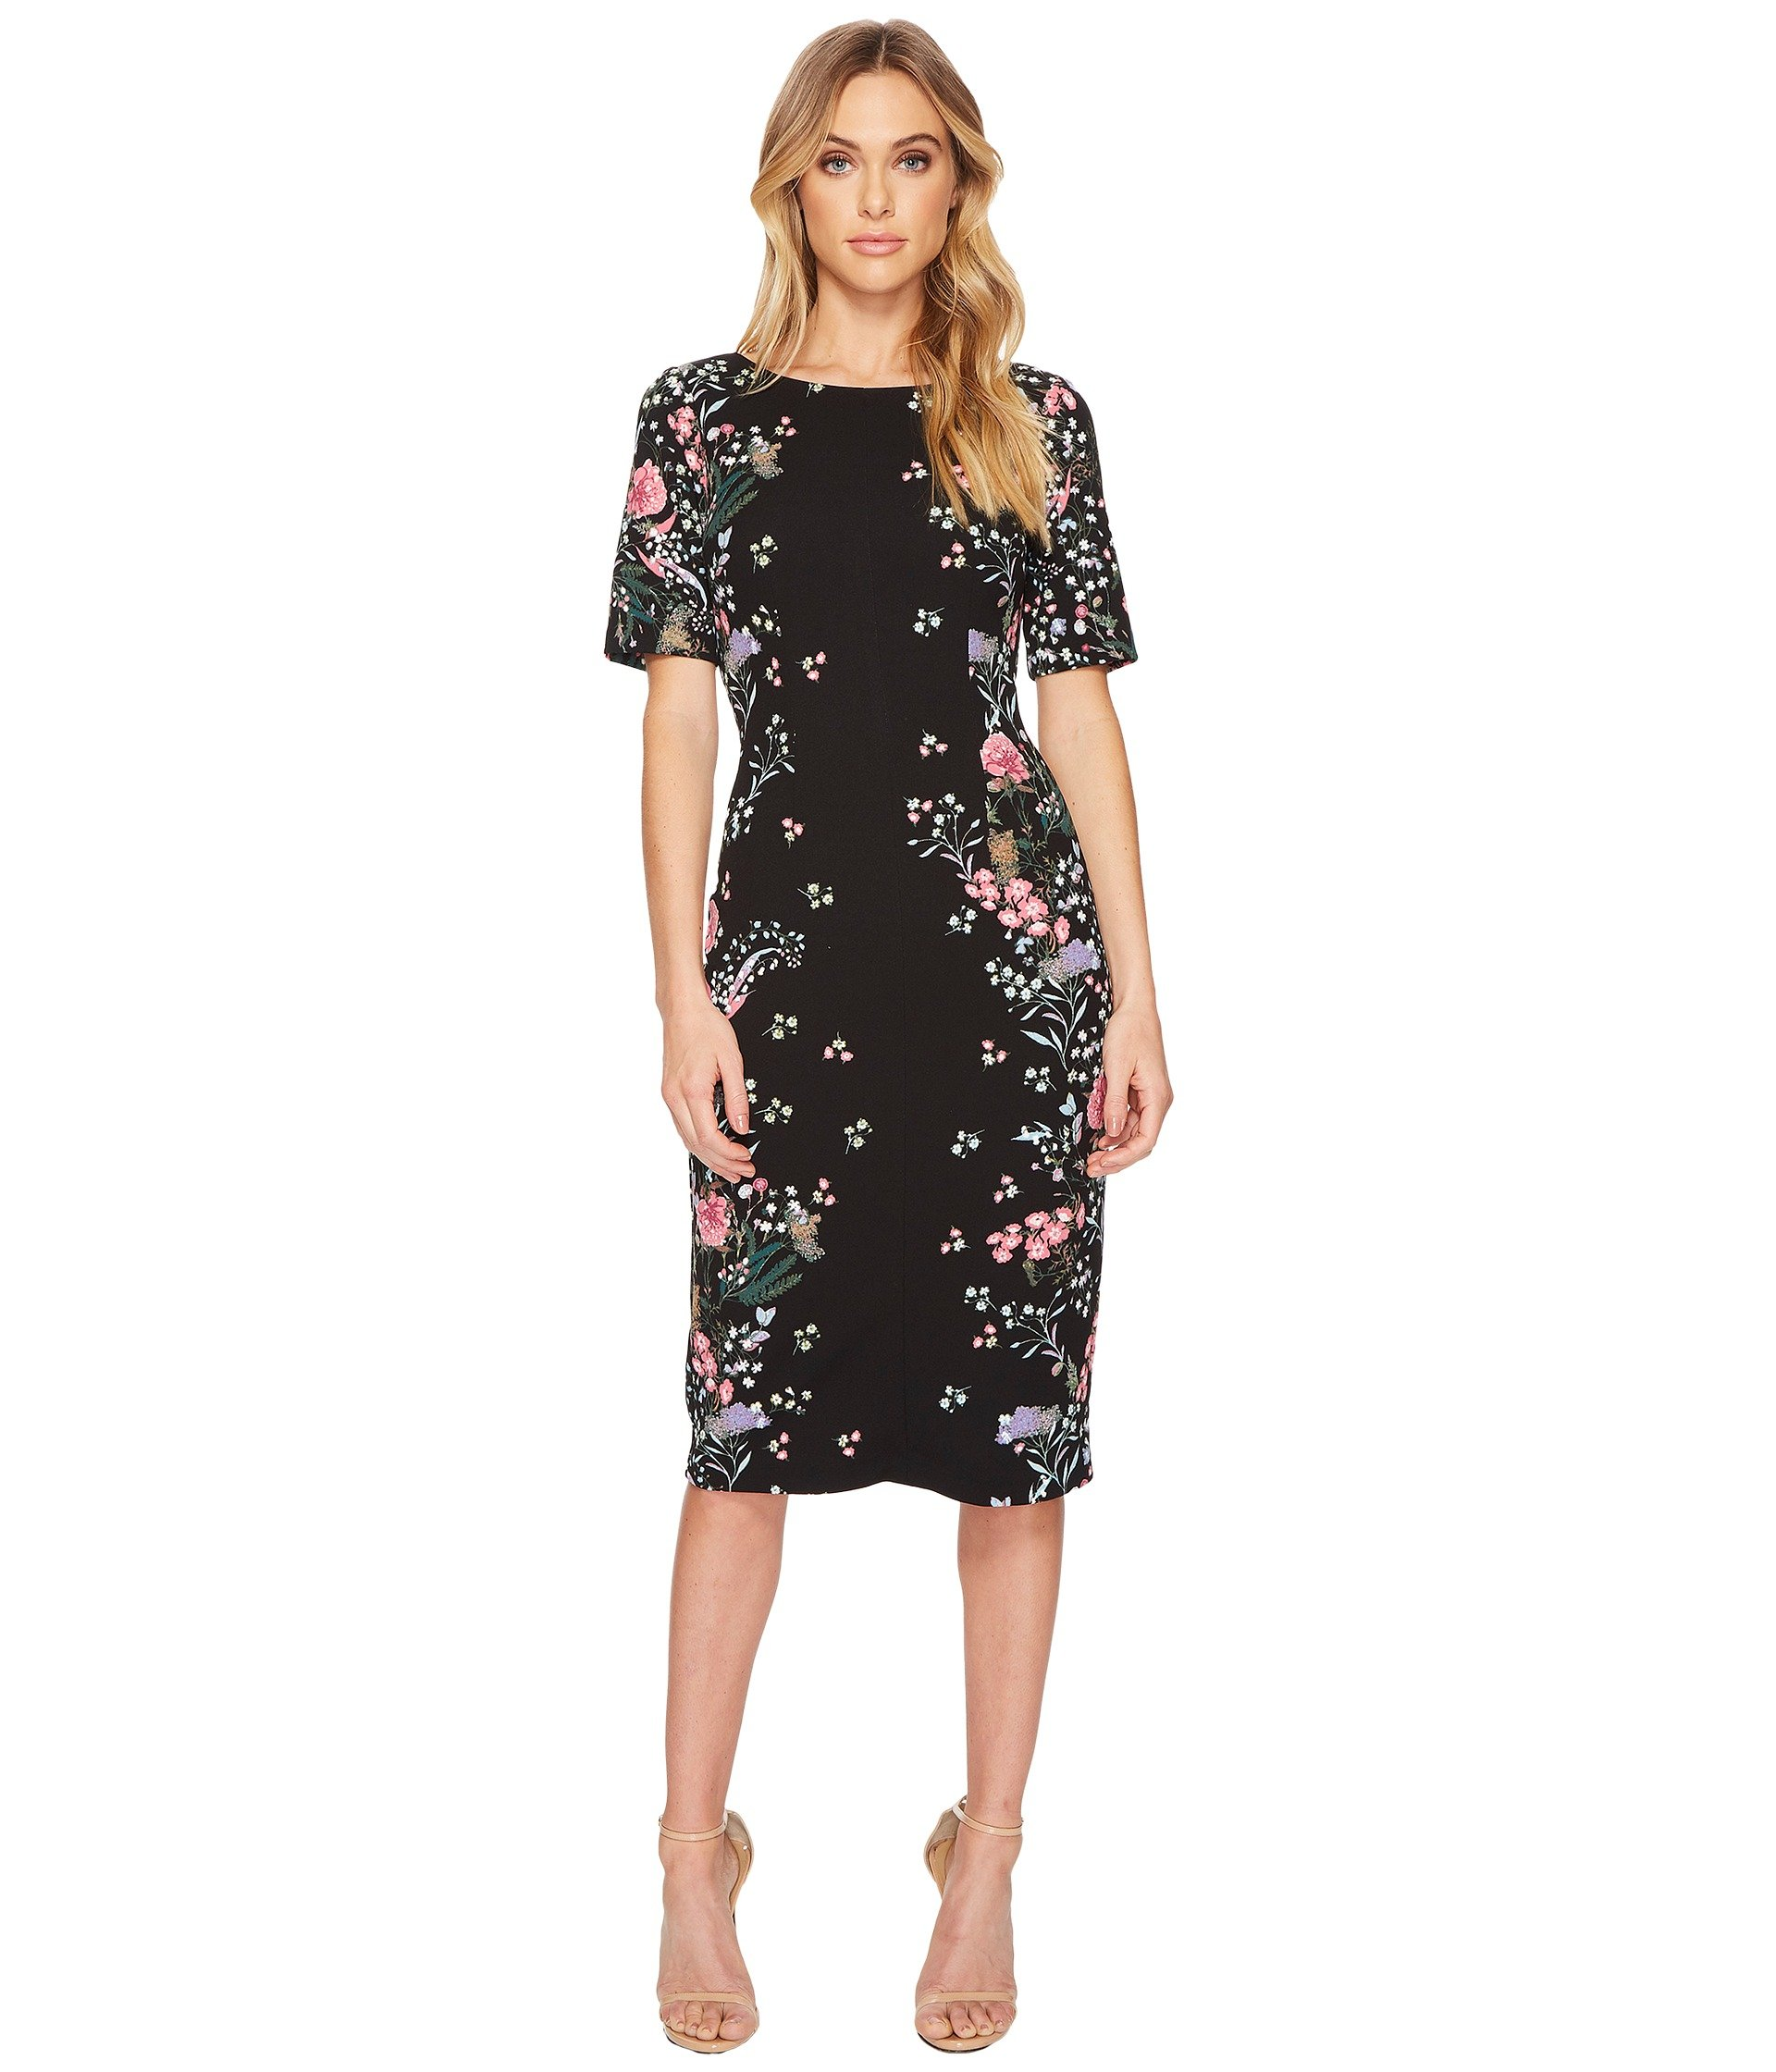 Adrianna Papell Women's Printed Sheath Midi Dress, Black/Multi, 6